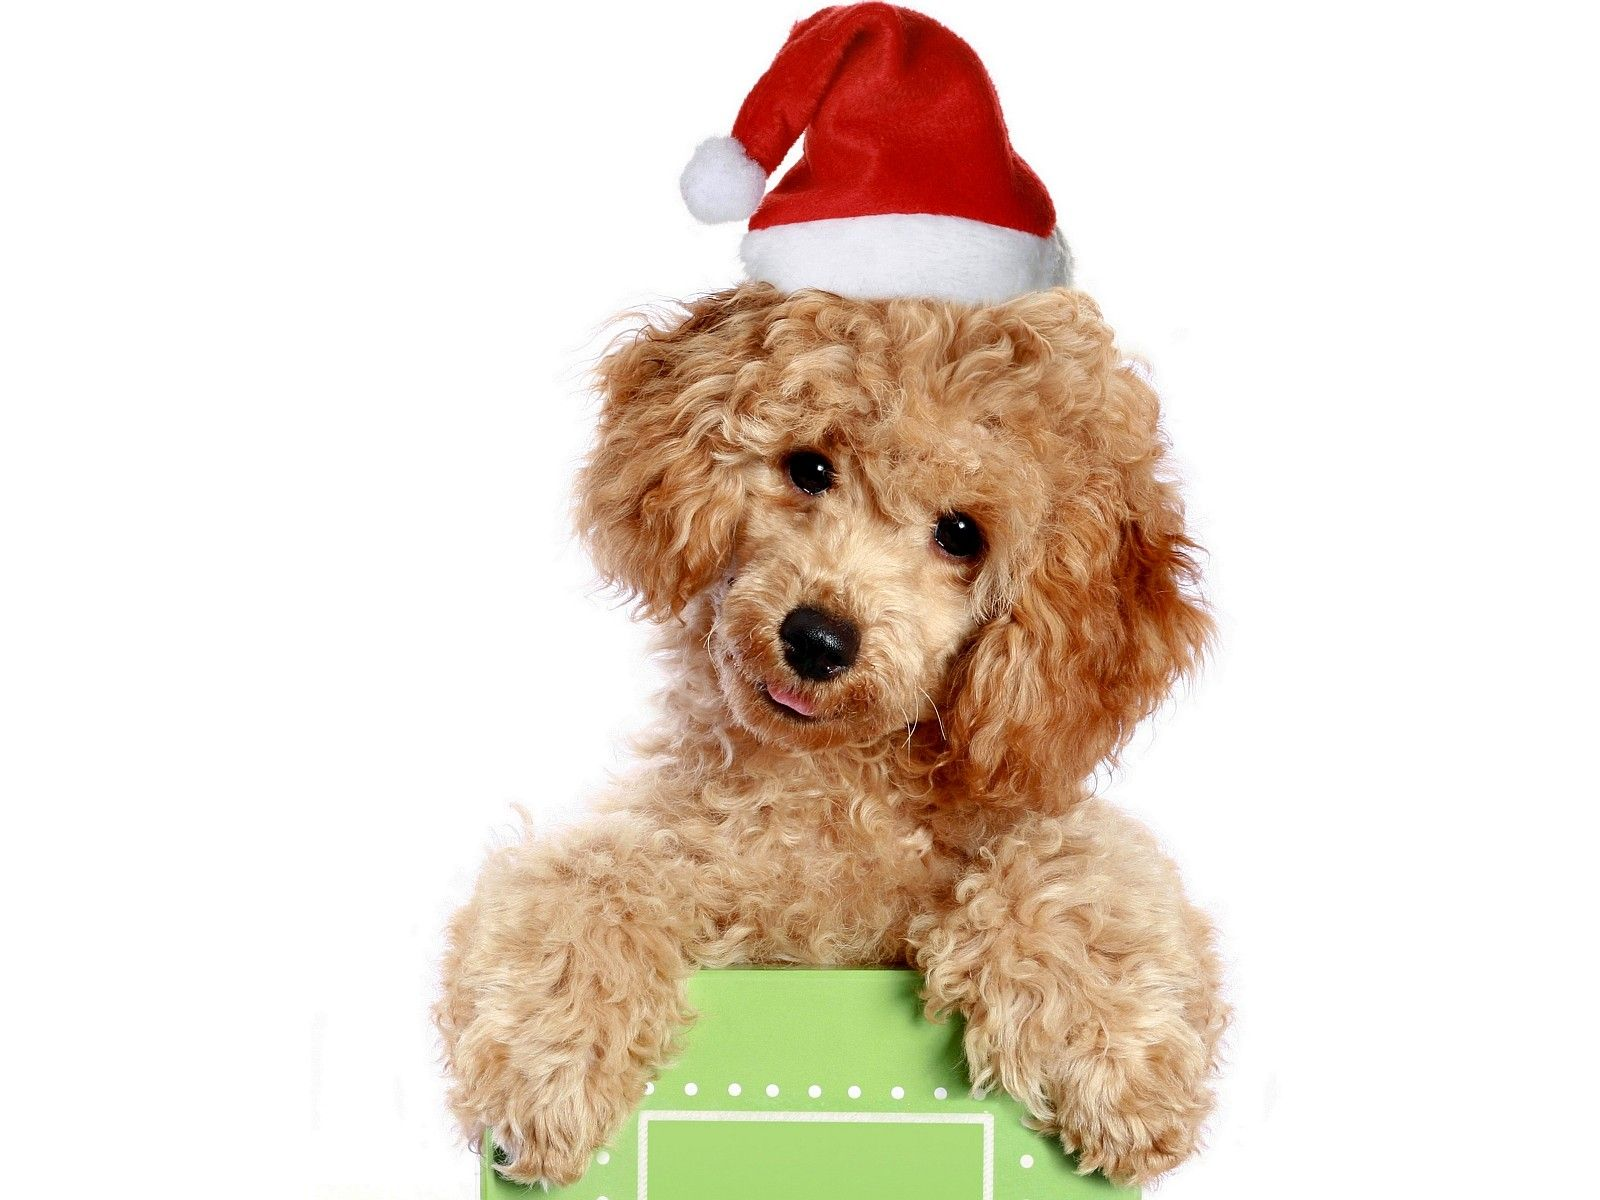 Download Your Favorite Christmas Dogs Wallpaper From Our List - Dog obsessed with stuffed santa toy gets to meet her idol in real life